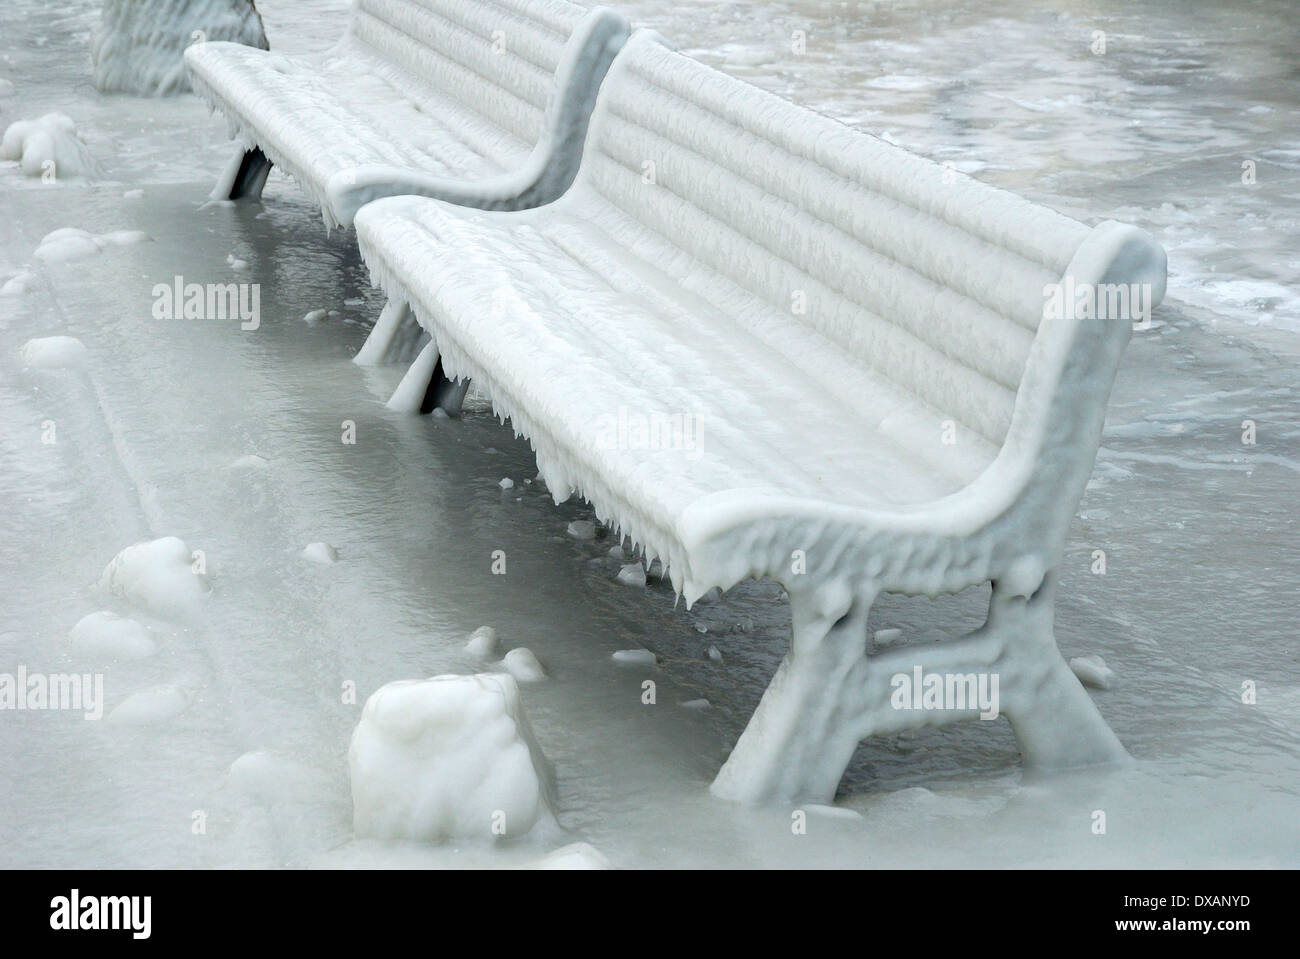 Benches covered with ice - Stock Image